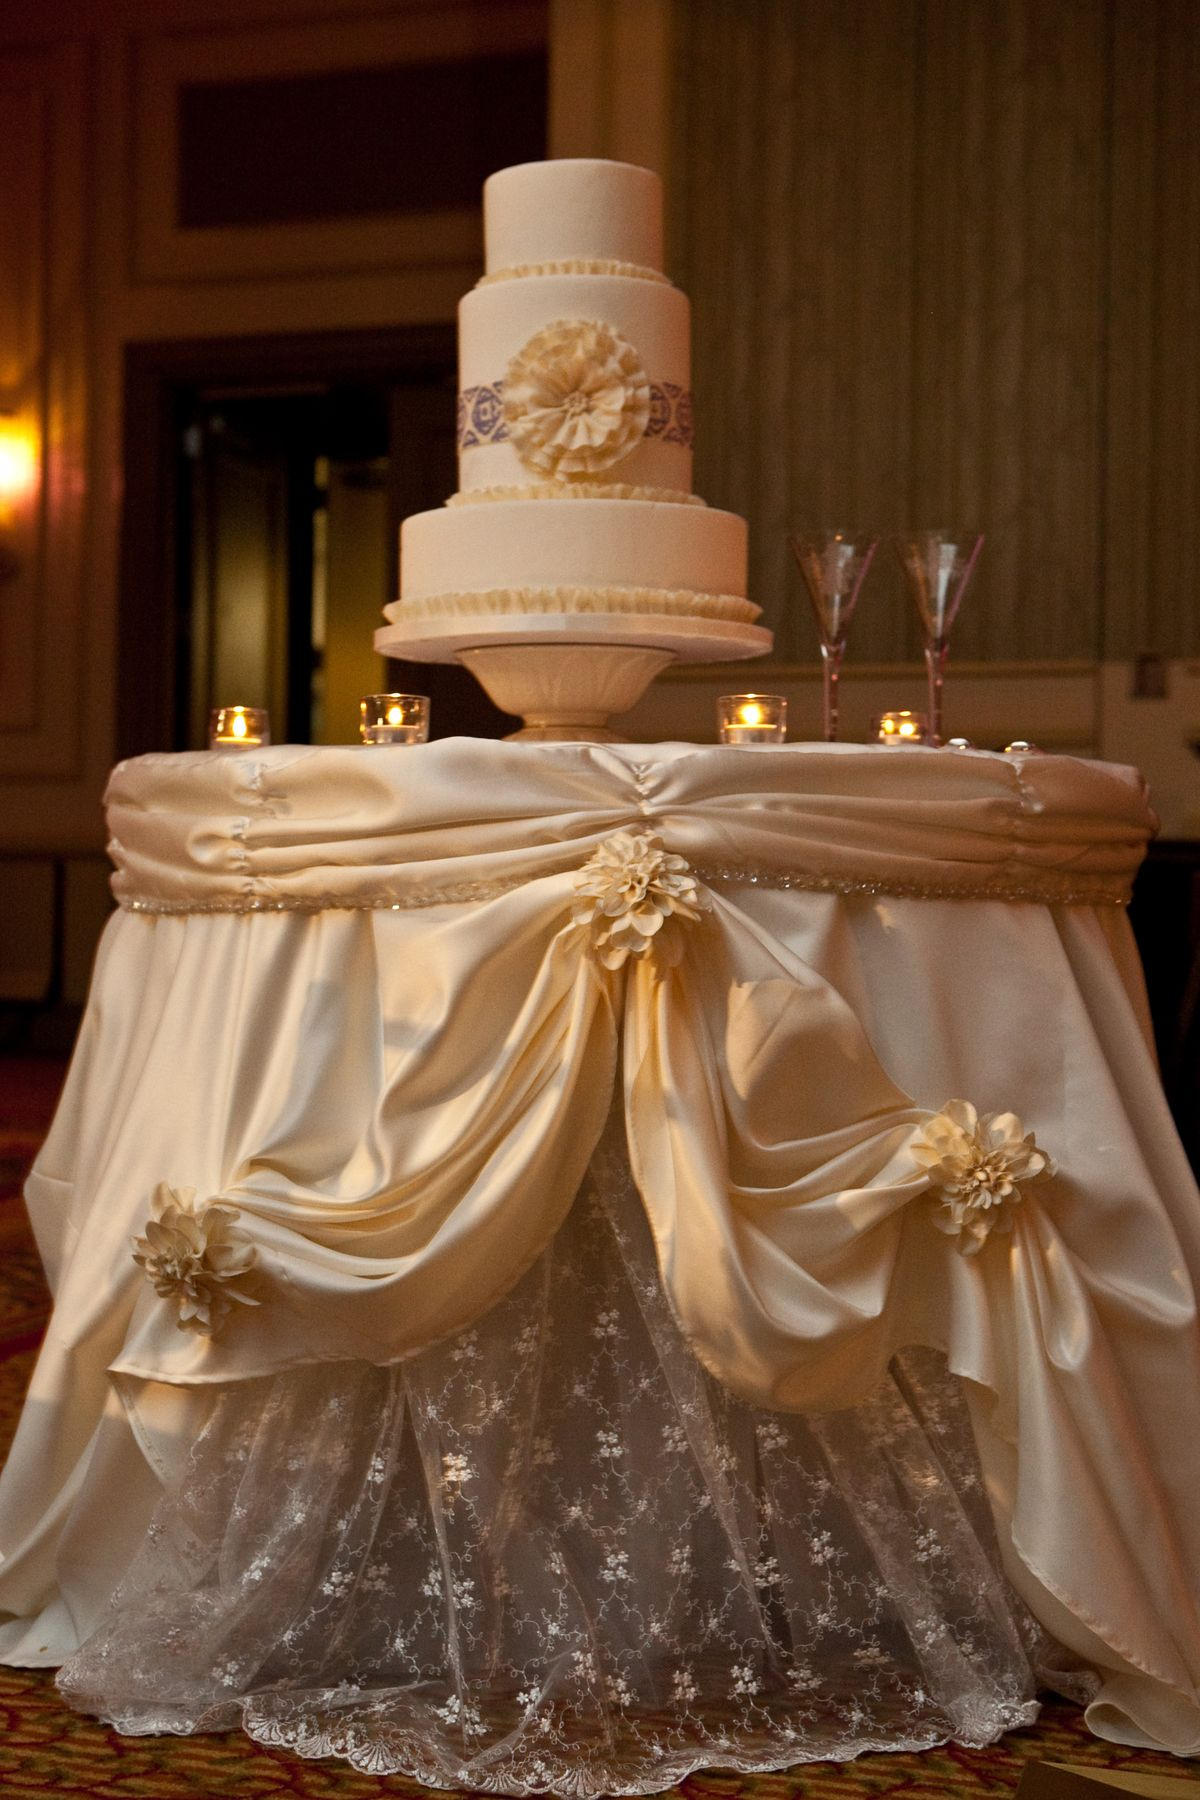 The gorgeous cake table linen was made to resemble the ...